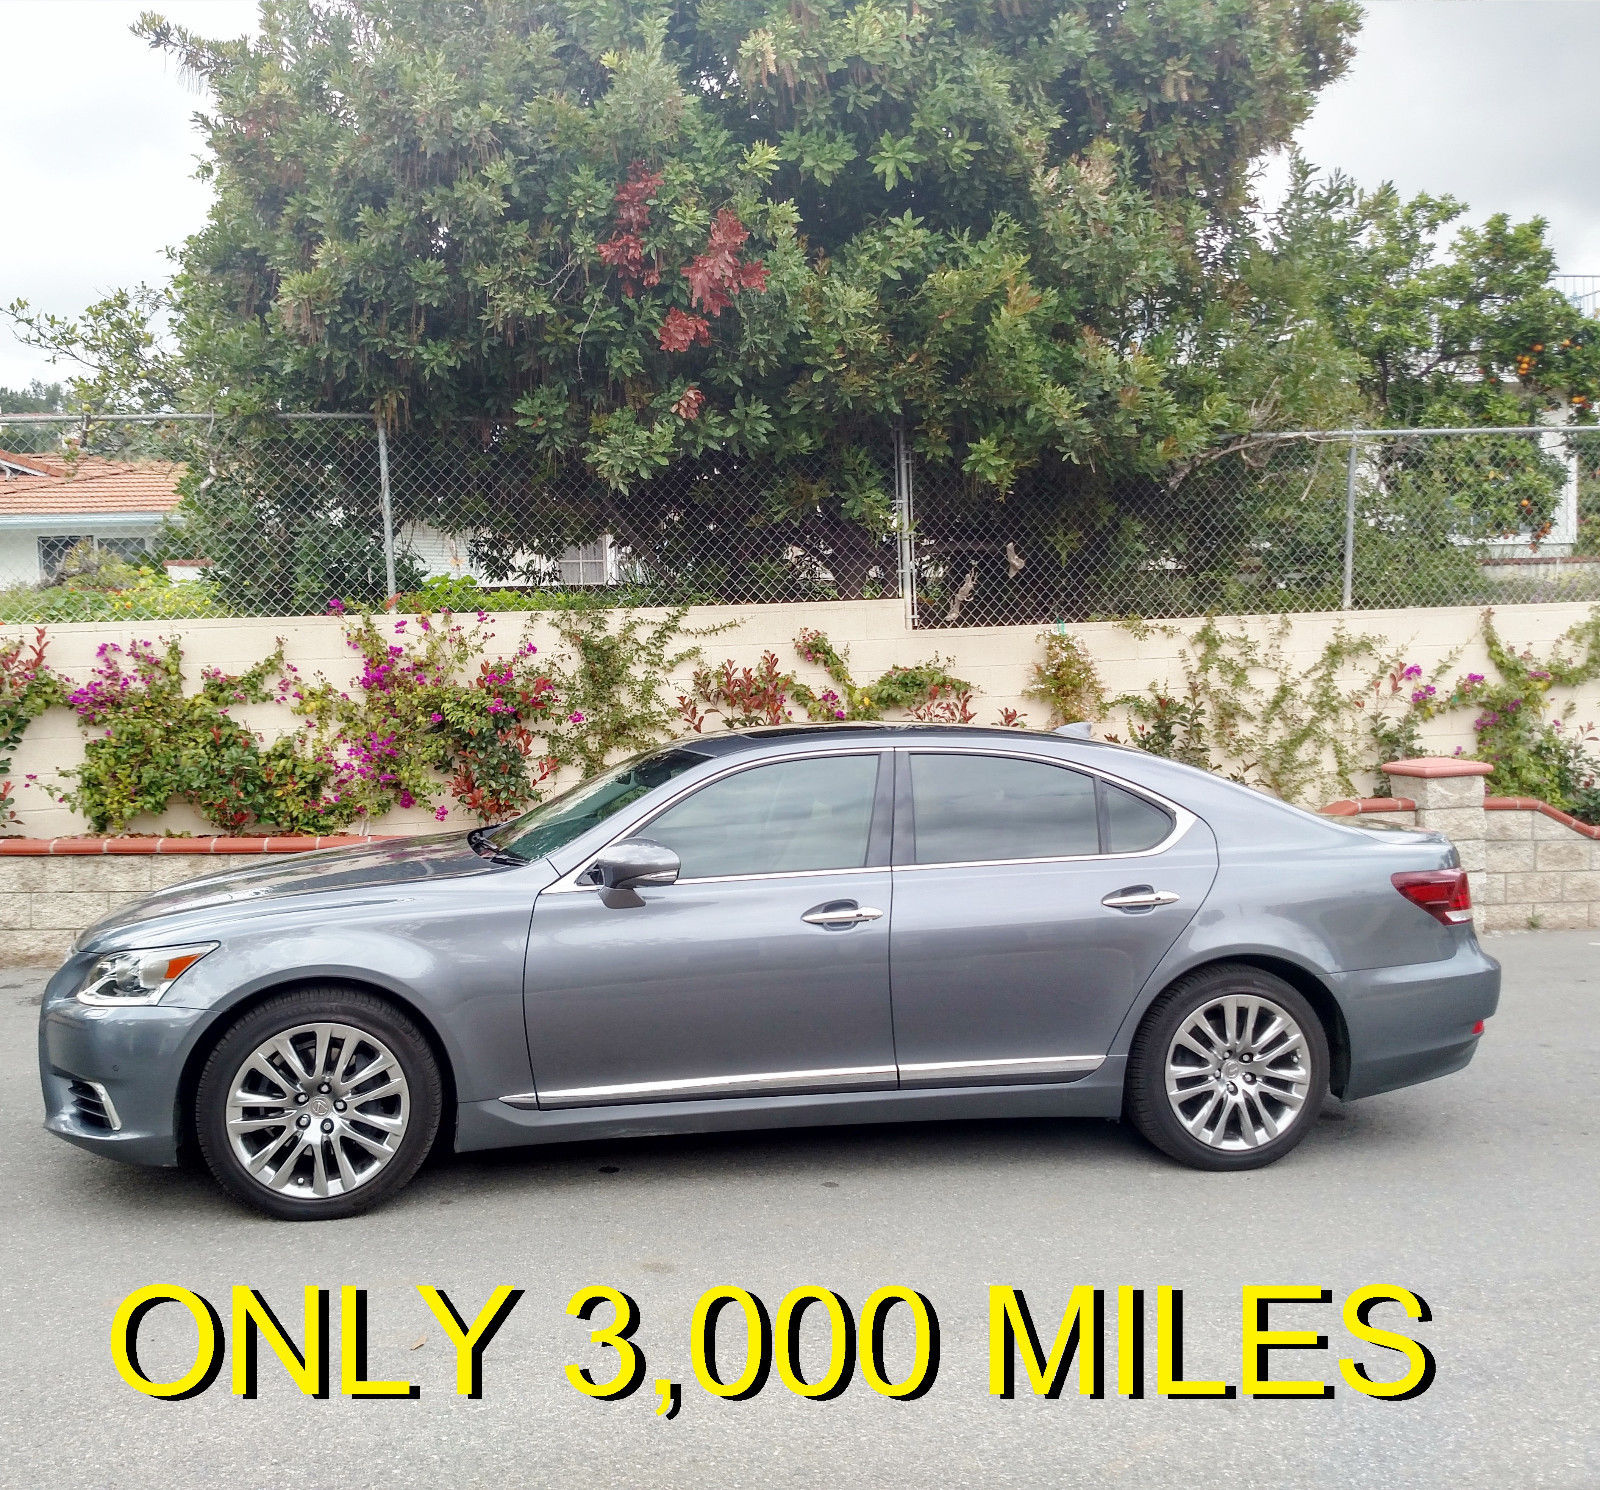 Lexus Ls 460 2014 Lexus Ls 460 460 4 6l V8 32v Automatic Awd Sedan Moonroof Premium 2018 2019 Is In Stock And For Sale Mycarboard Com